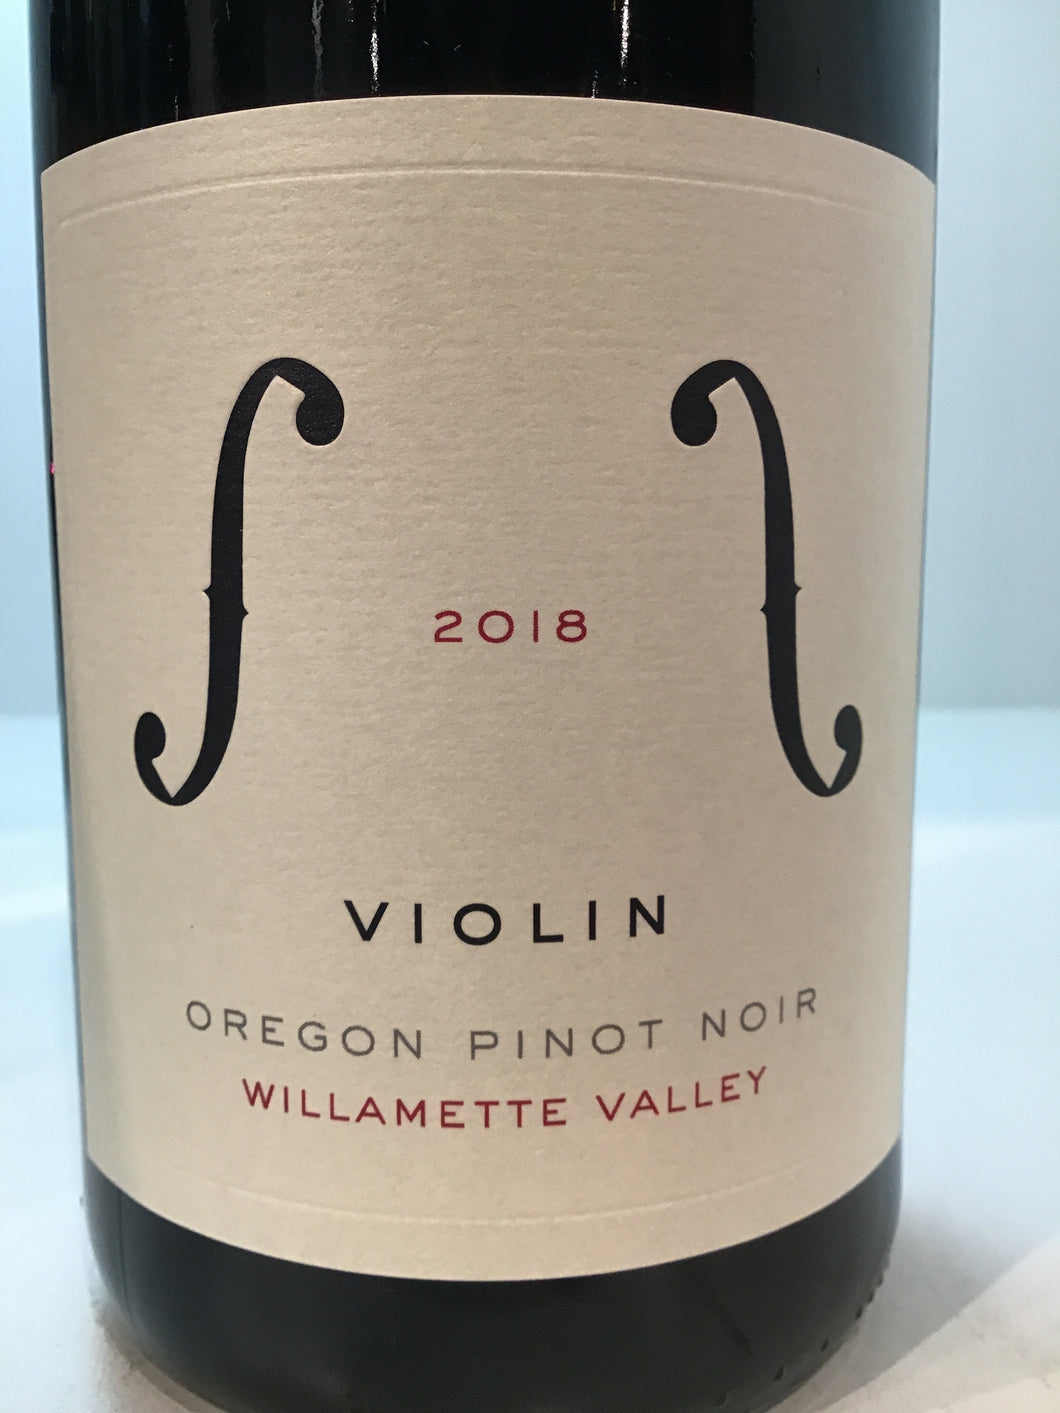 Violin - Willamette Valley - Pinot Noir